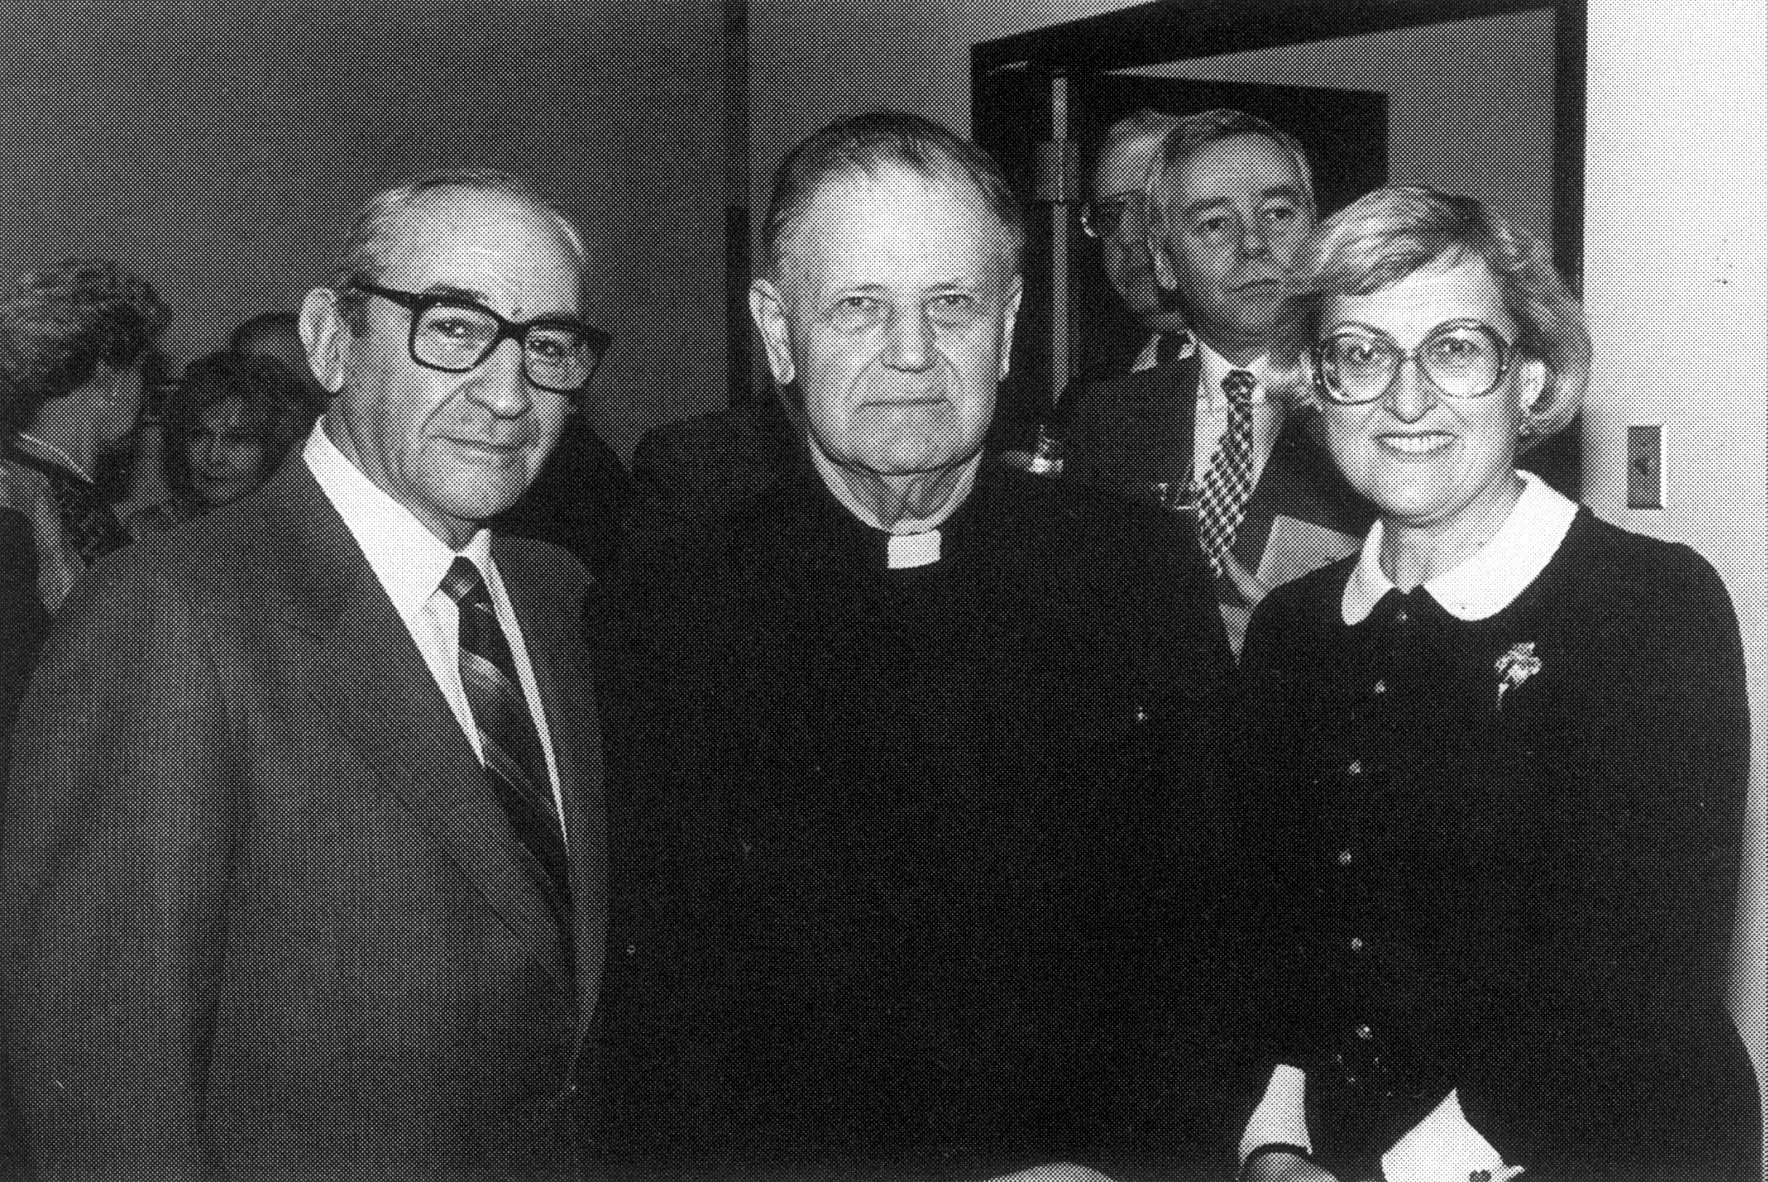 From left to right: David Packin, Fr. Kasimirs Vilnis, and prof. Gertrude Scheider